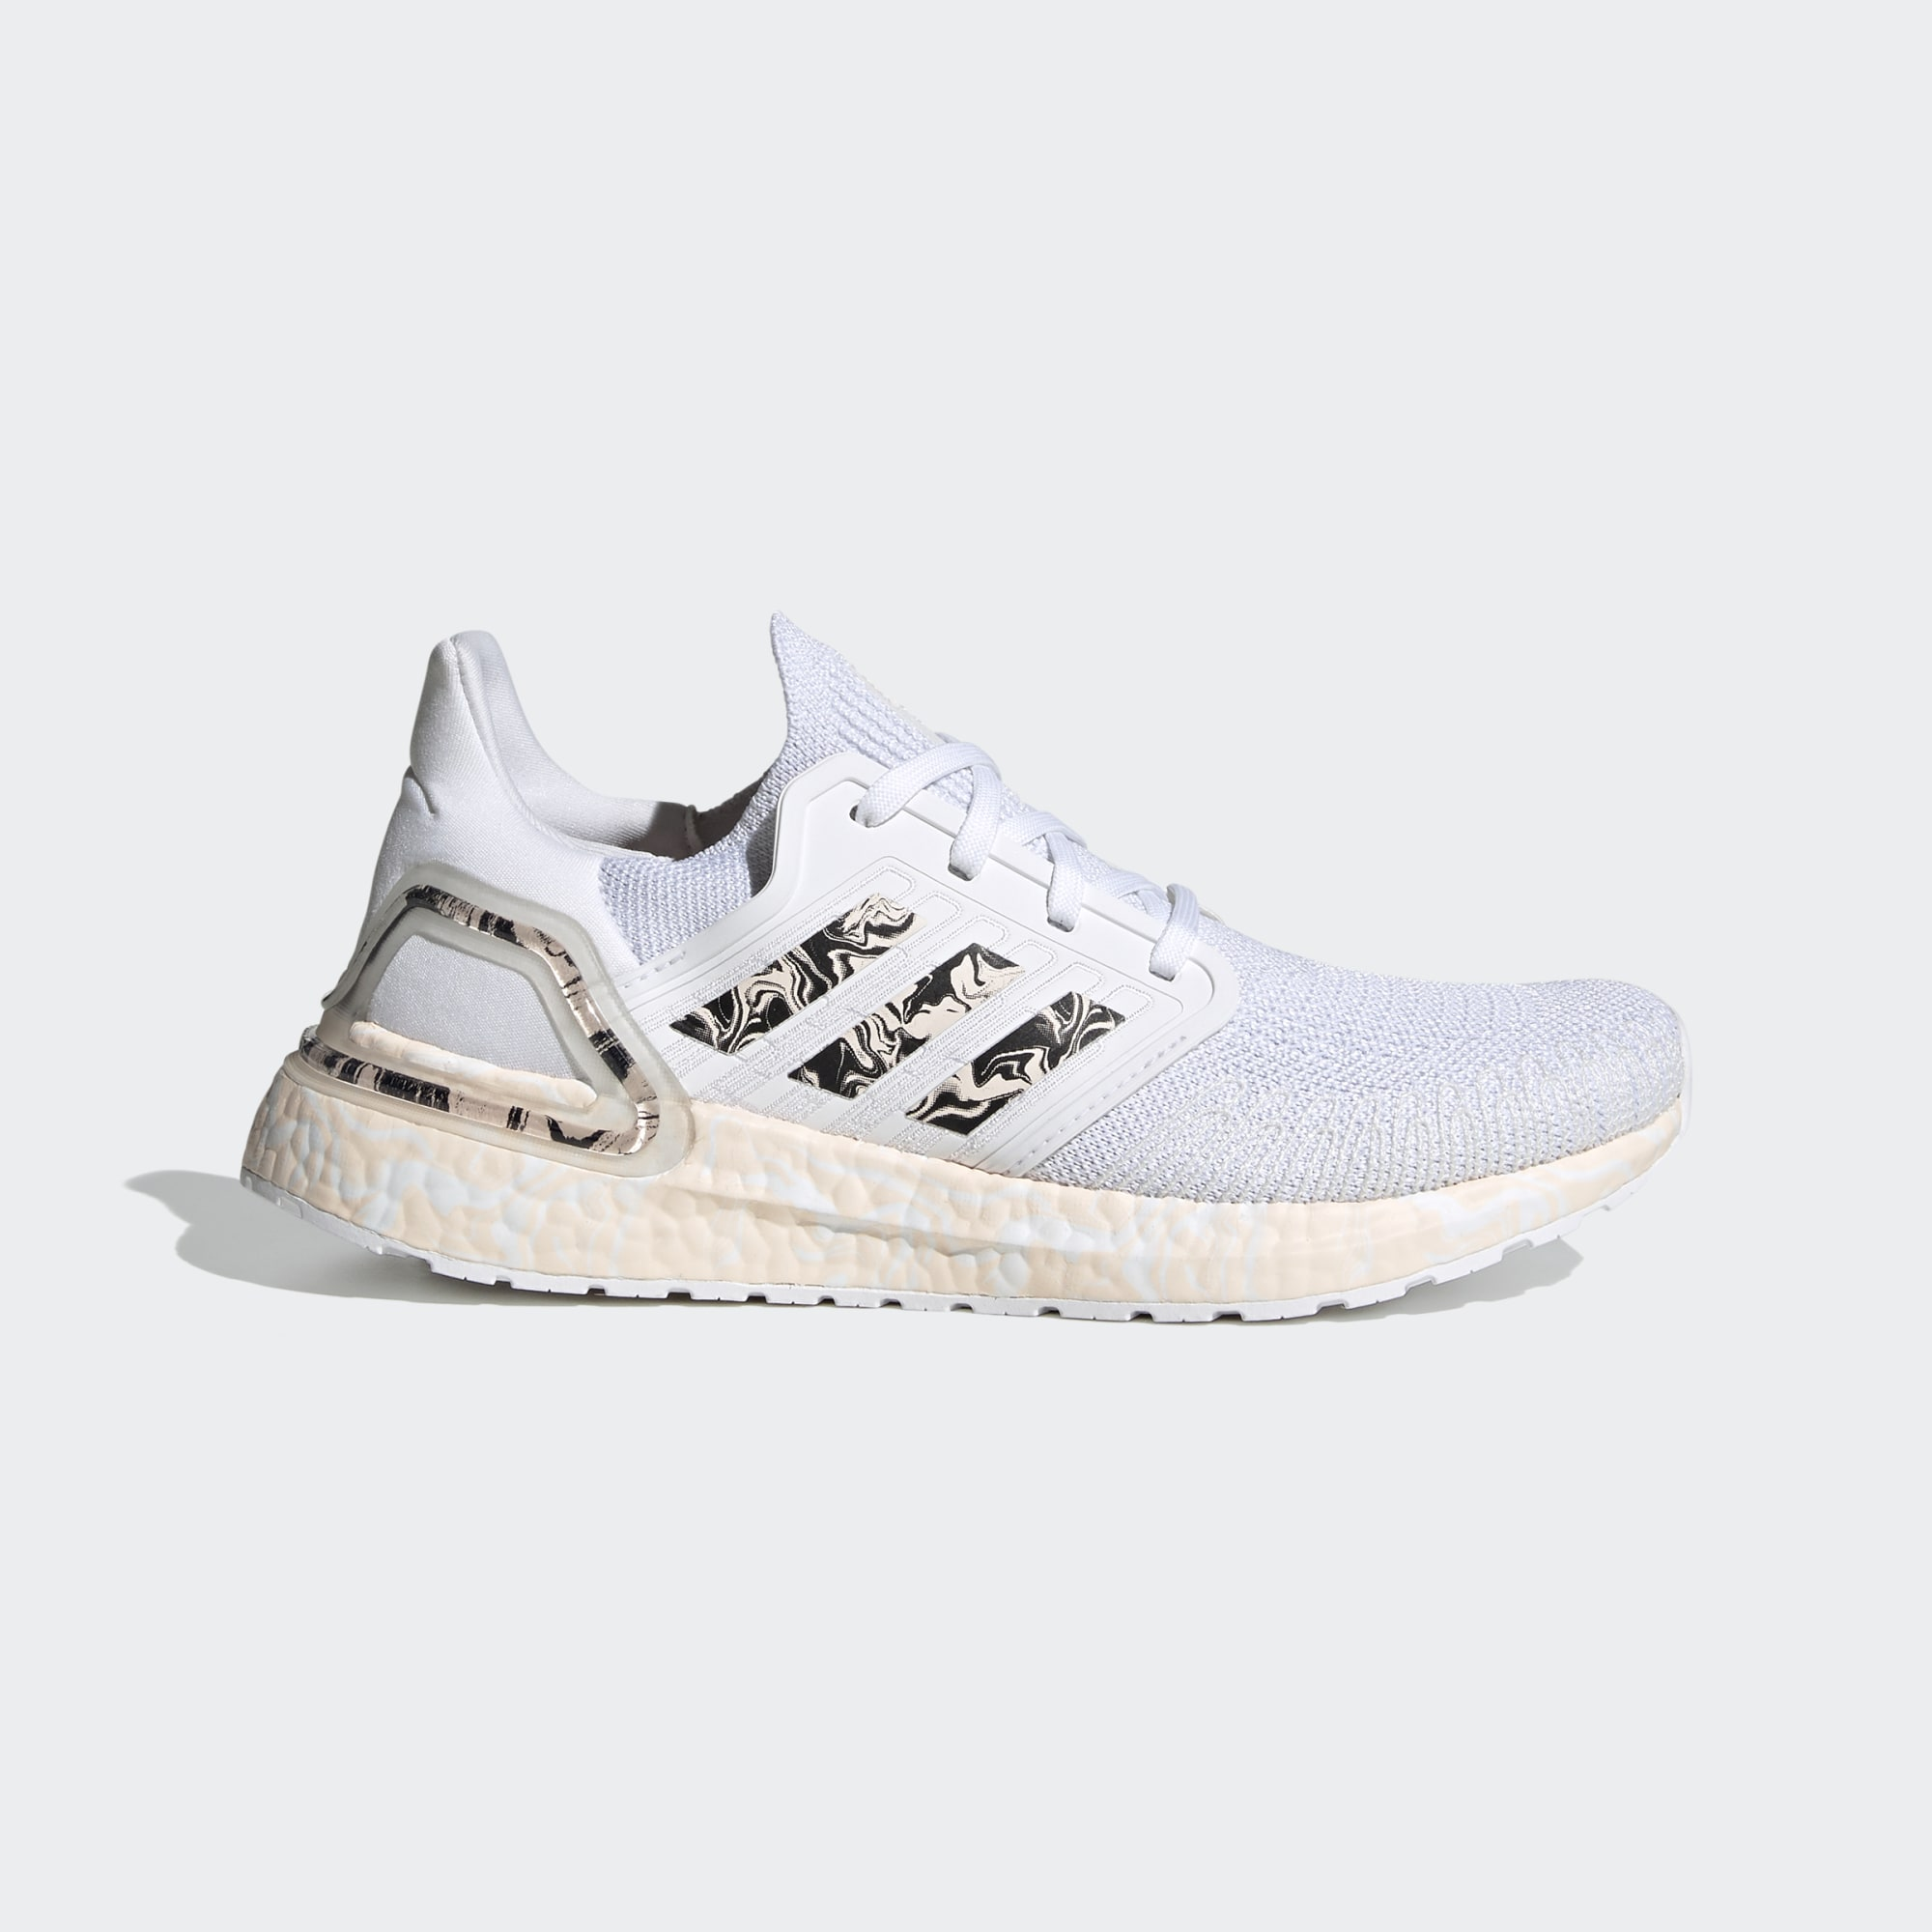 giay-sneaker-nam-adidas-ultraboost-20-fw5721-glam-pack-cloud-white-hang-chinh-ha